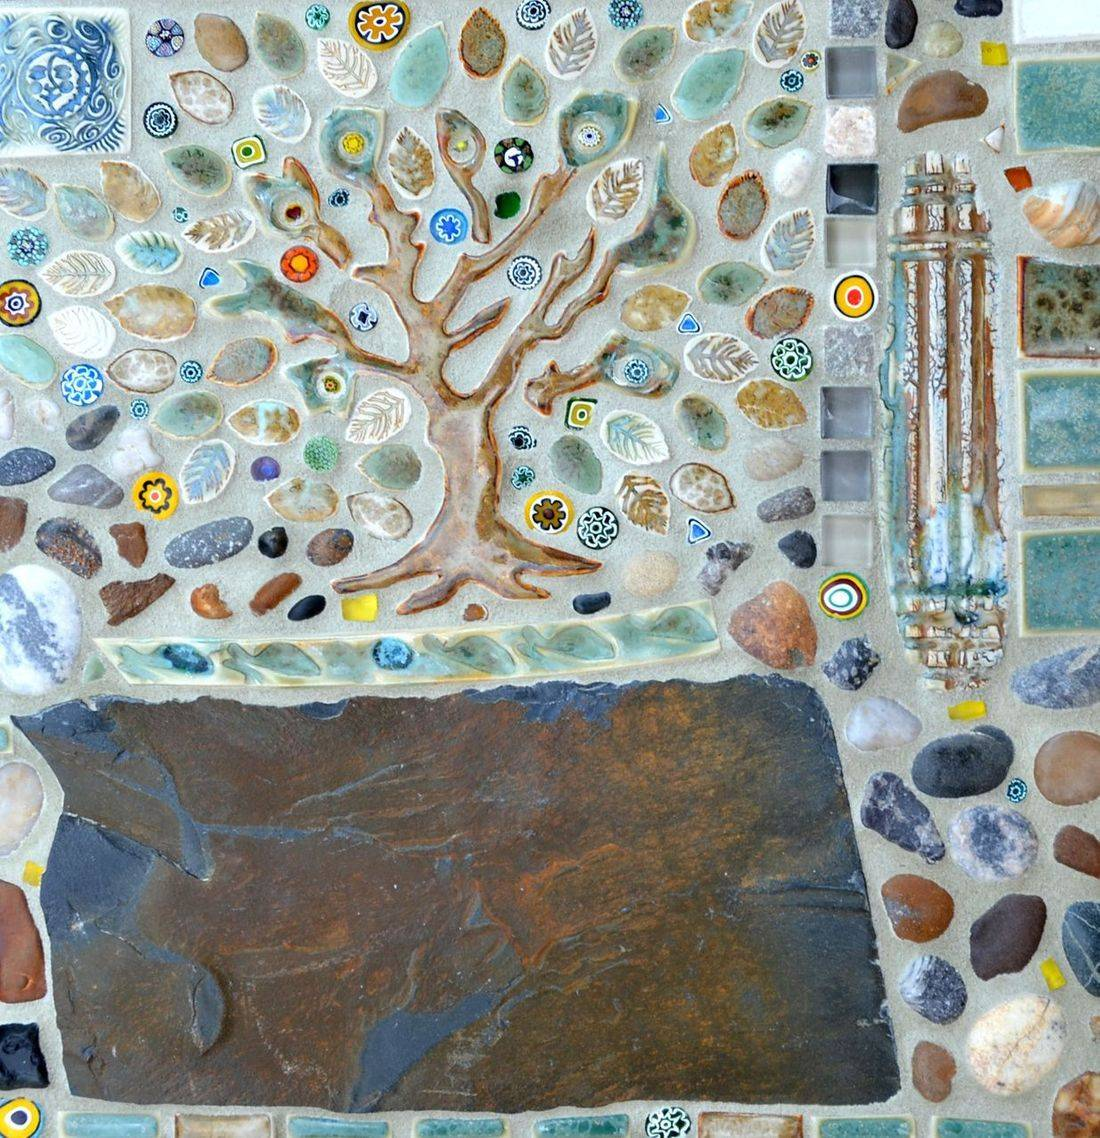 Hand Made Porcelain tree+ tiles, Italian glass, slate, river stones,sanded grout